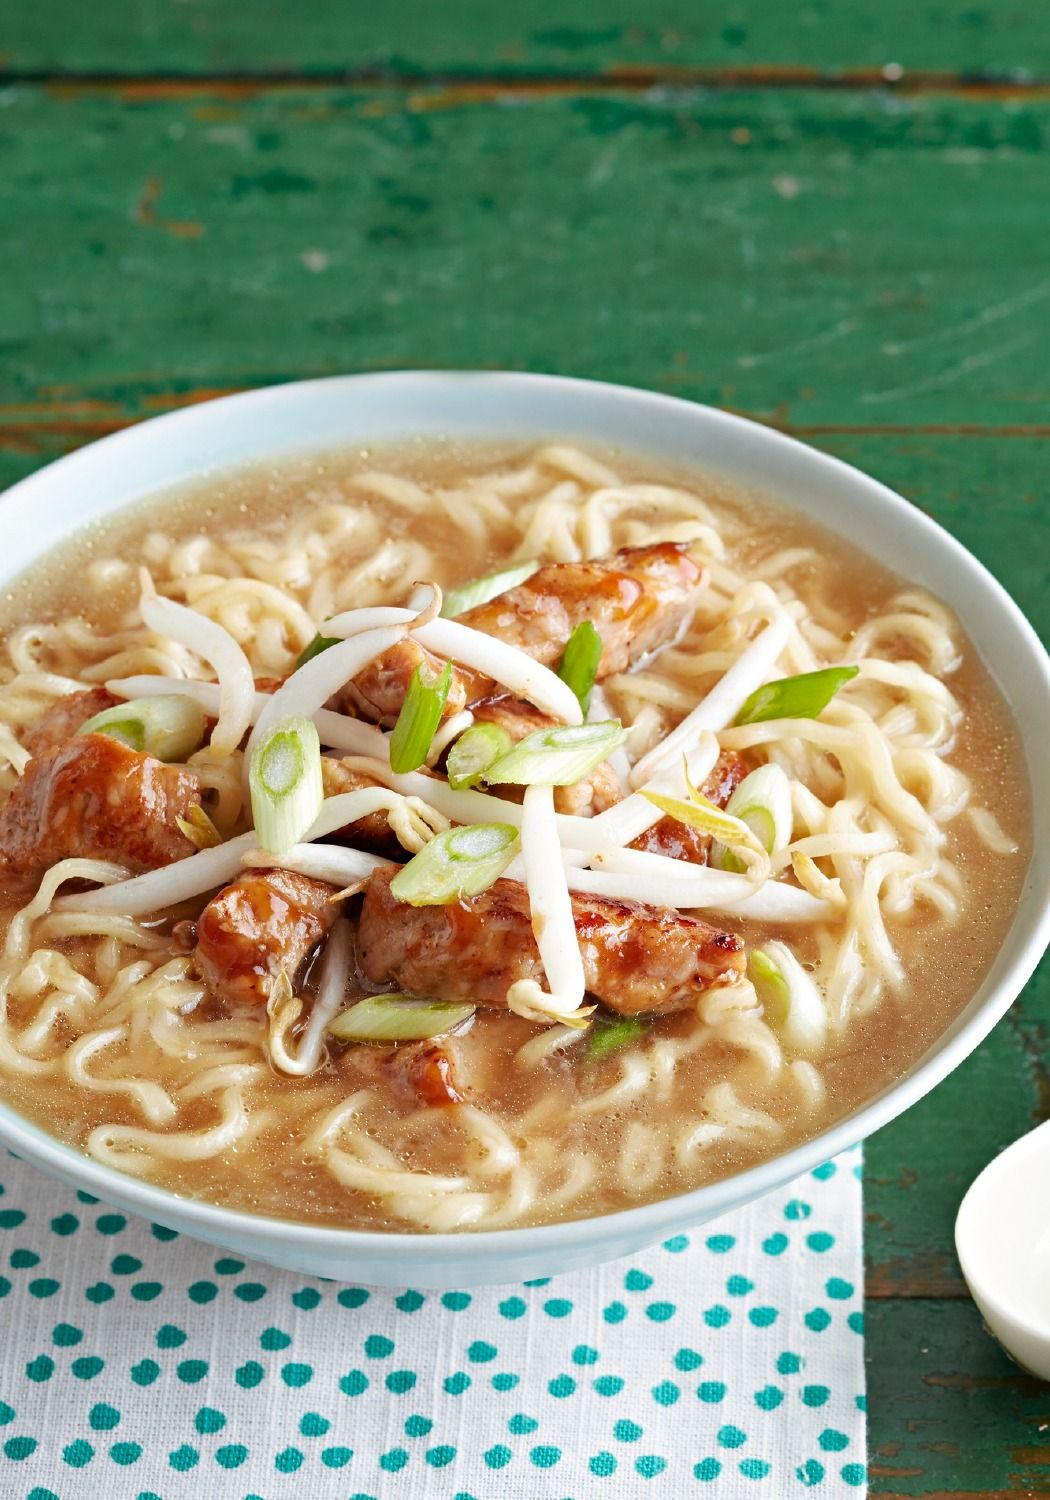 Barbecue Pork Noodle Bowl – A couple of seasoning packets from ramen